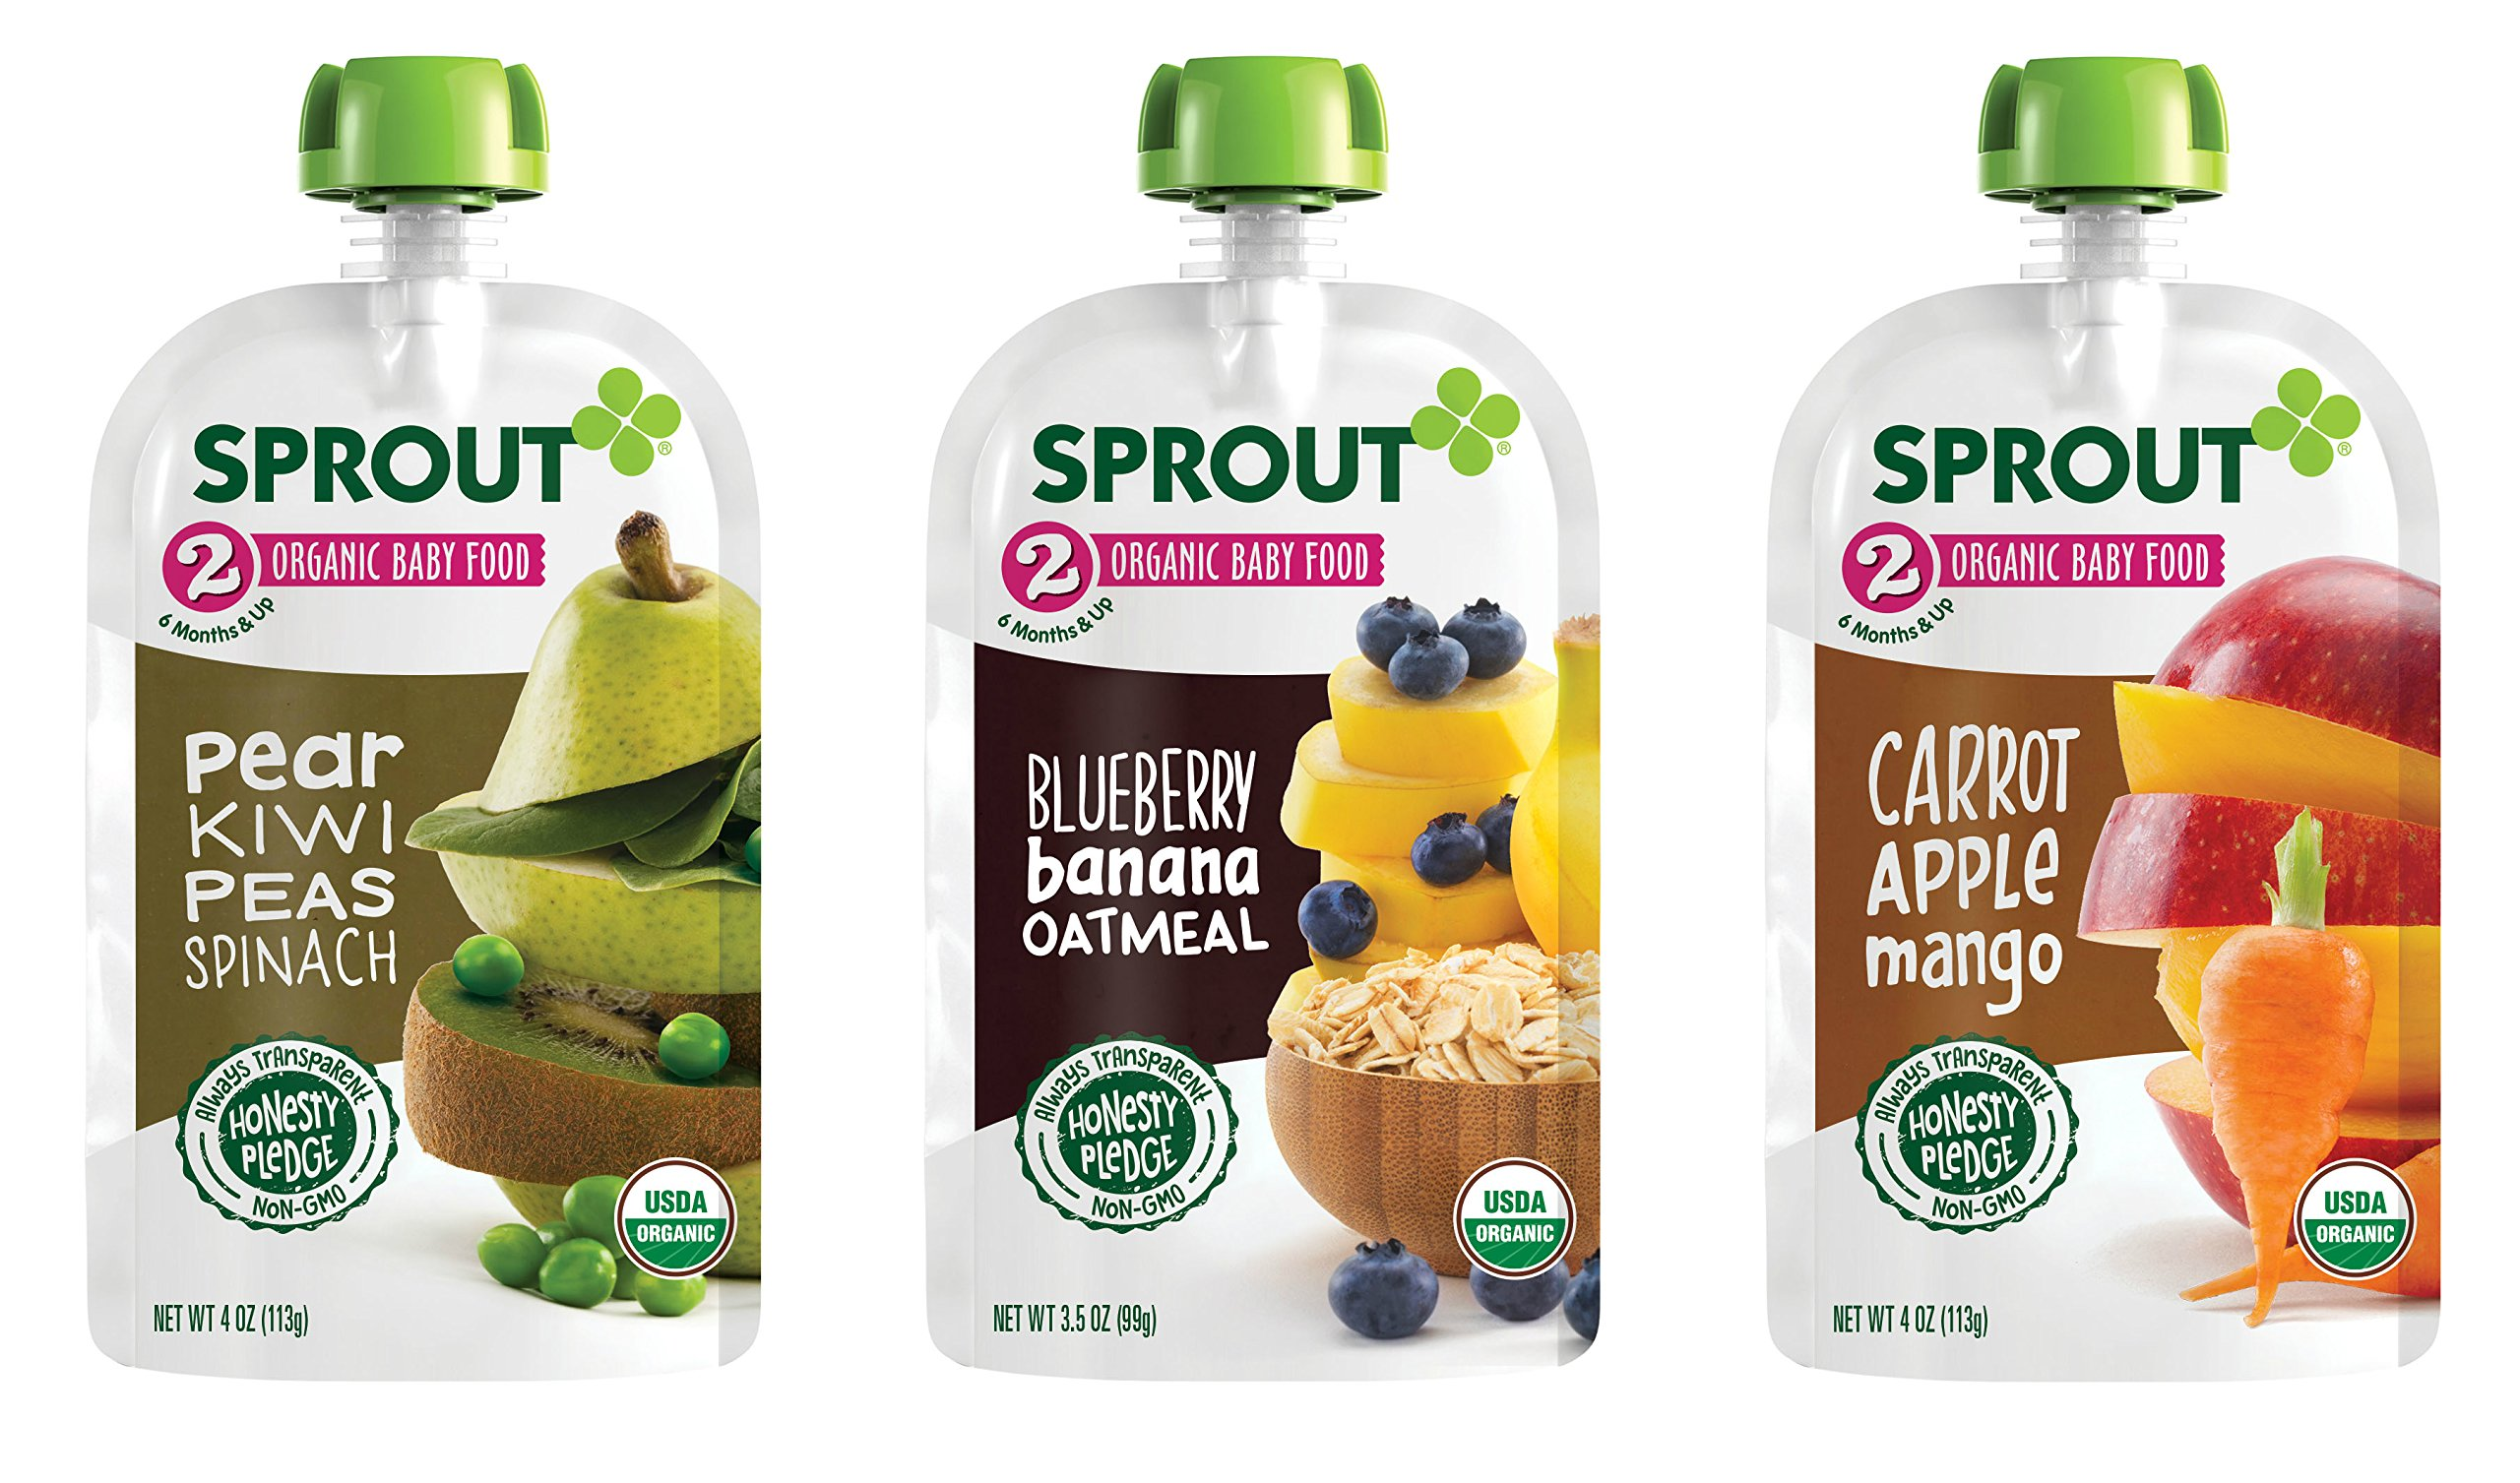 sprout-organic-baby-food-brand